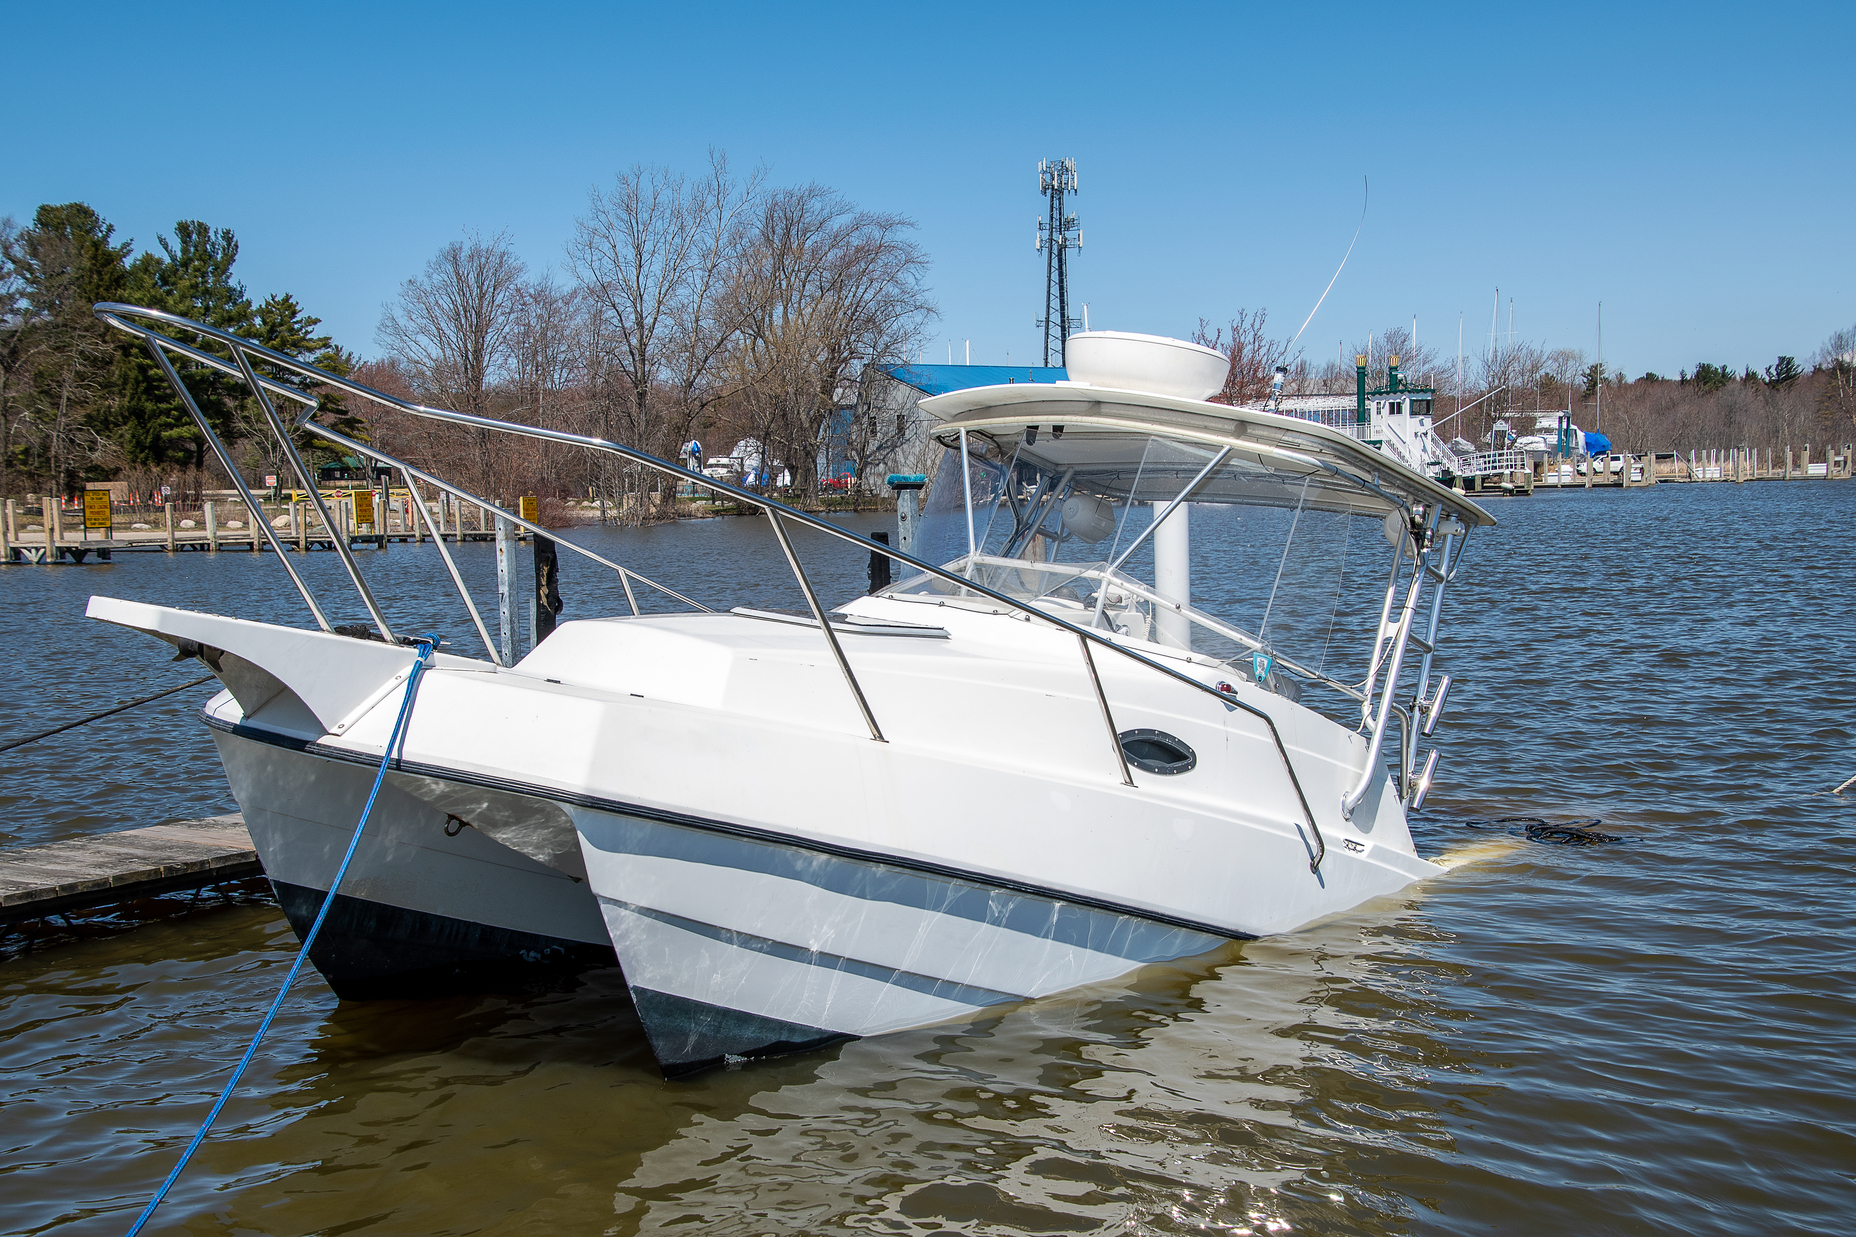 Boat Buyers Beware: 10 Hidden Problems to Look For in Used Boats - boats.com